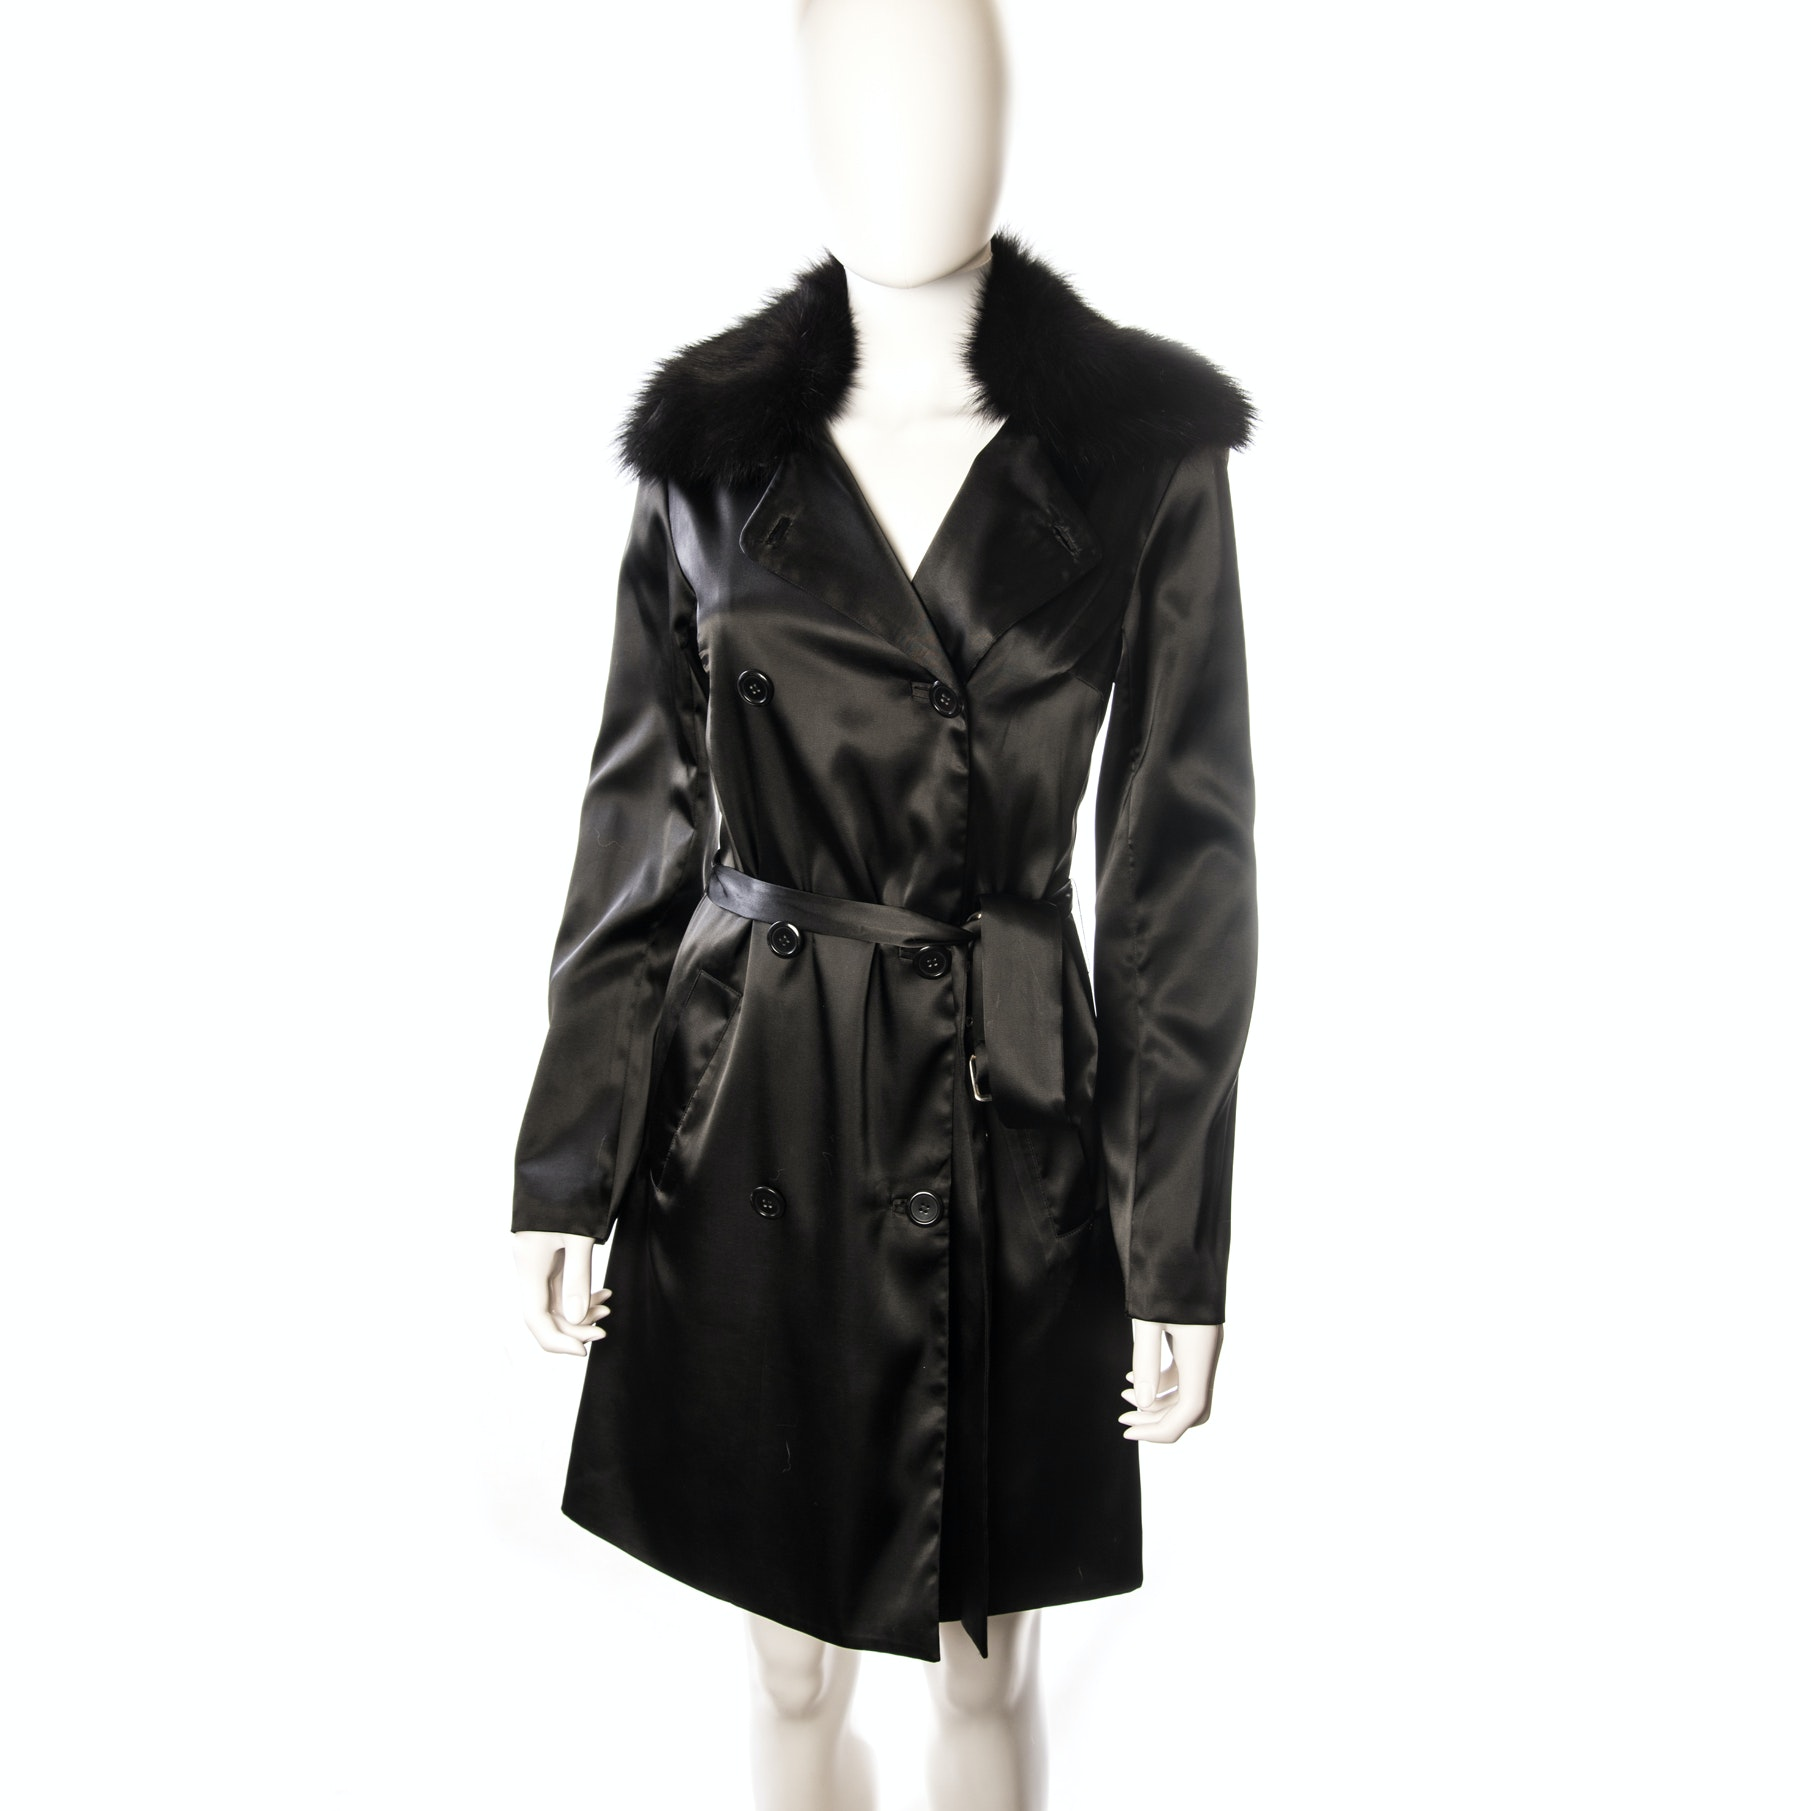 Sheri Bodell Black Satin Trench Coat with Black Fox Fur Collar